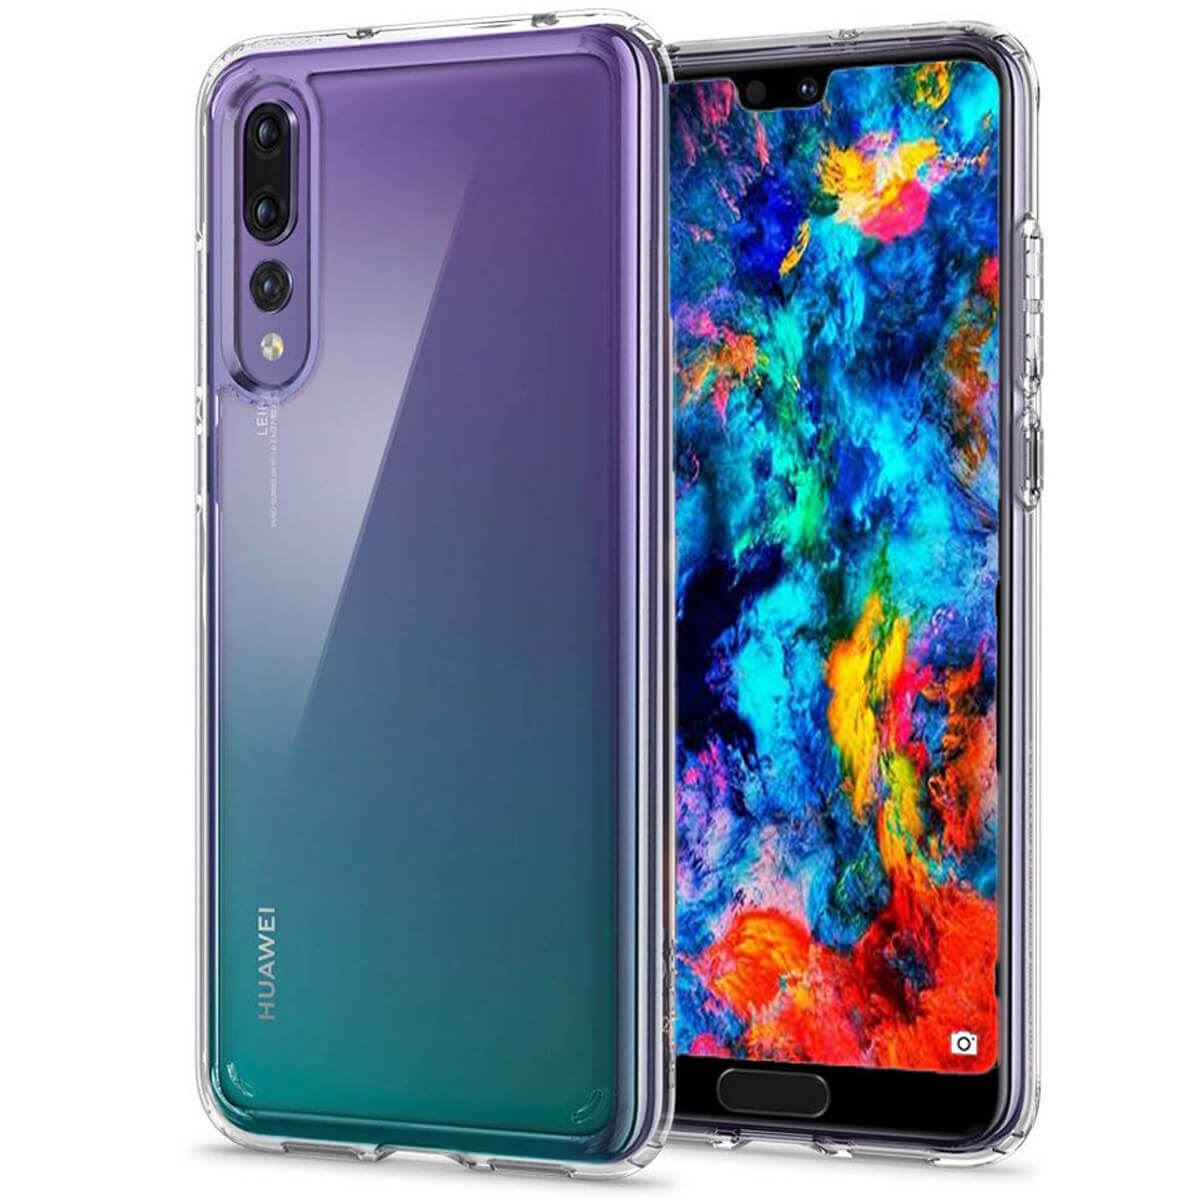 Case-For-Huawei-P20-Pro-P-Smart-Shockproof-Silicone-Protective-Clear-Gel-Cover thumbnail 3